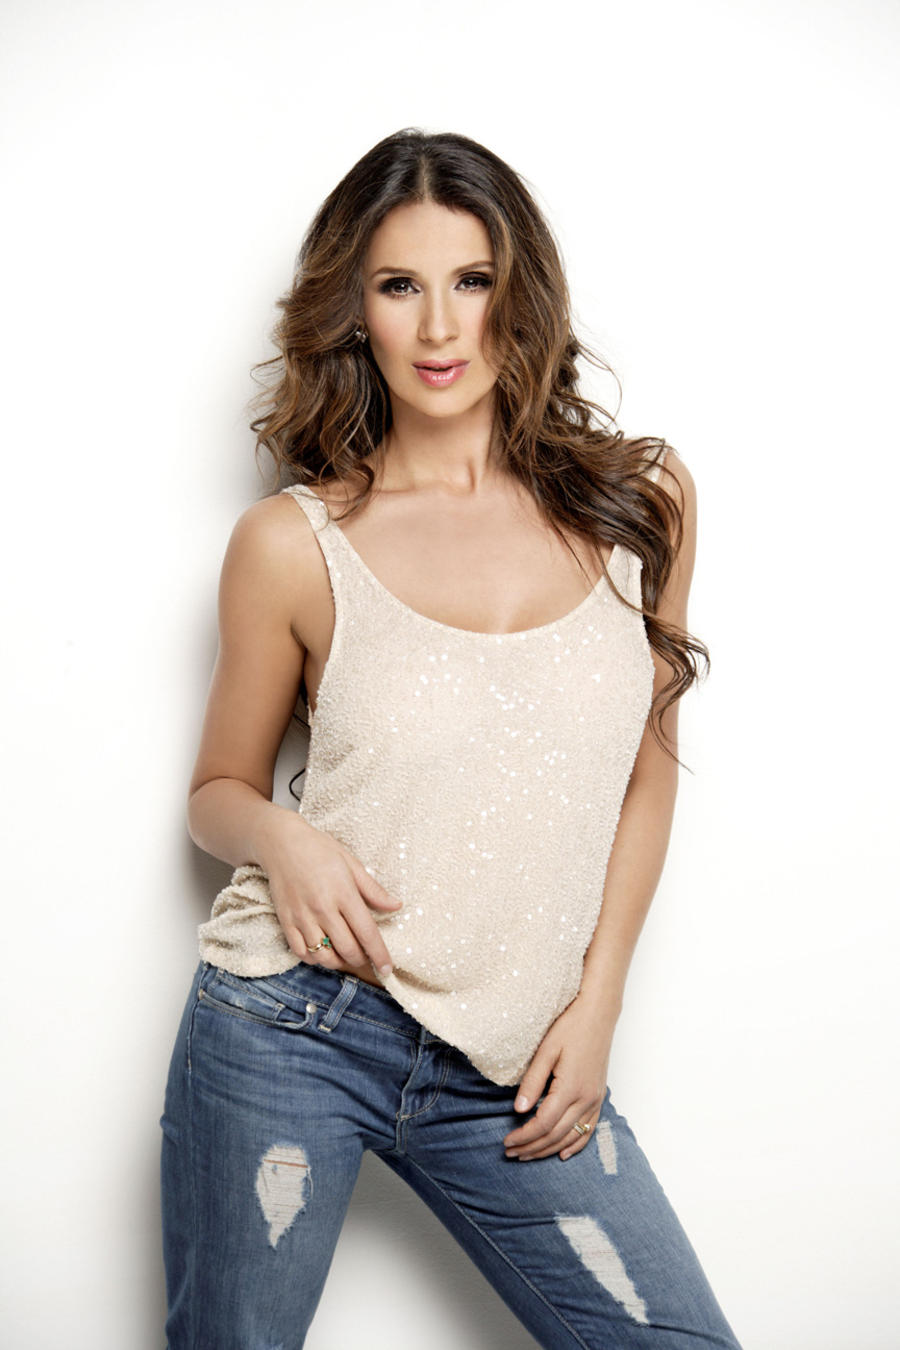 catherine siachoque, foto, jeans, look natural